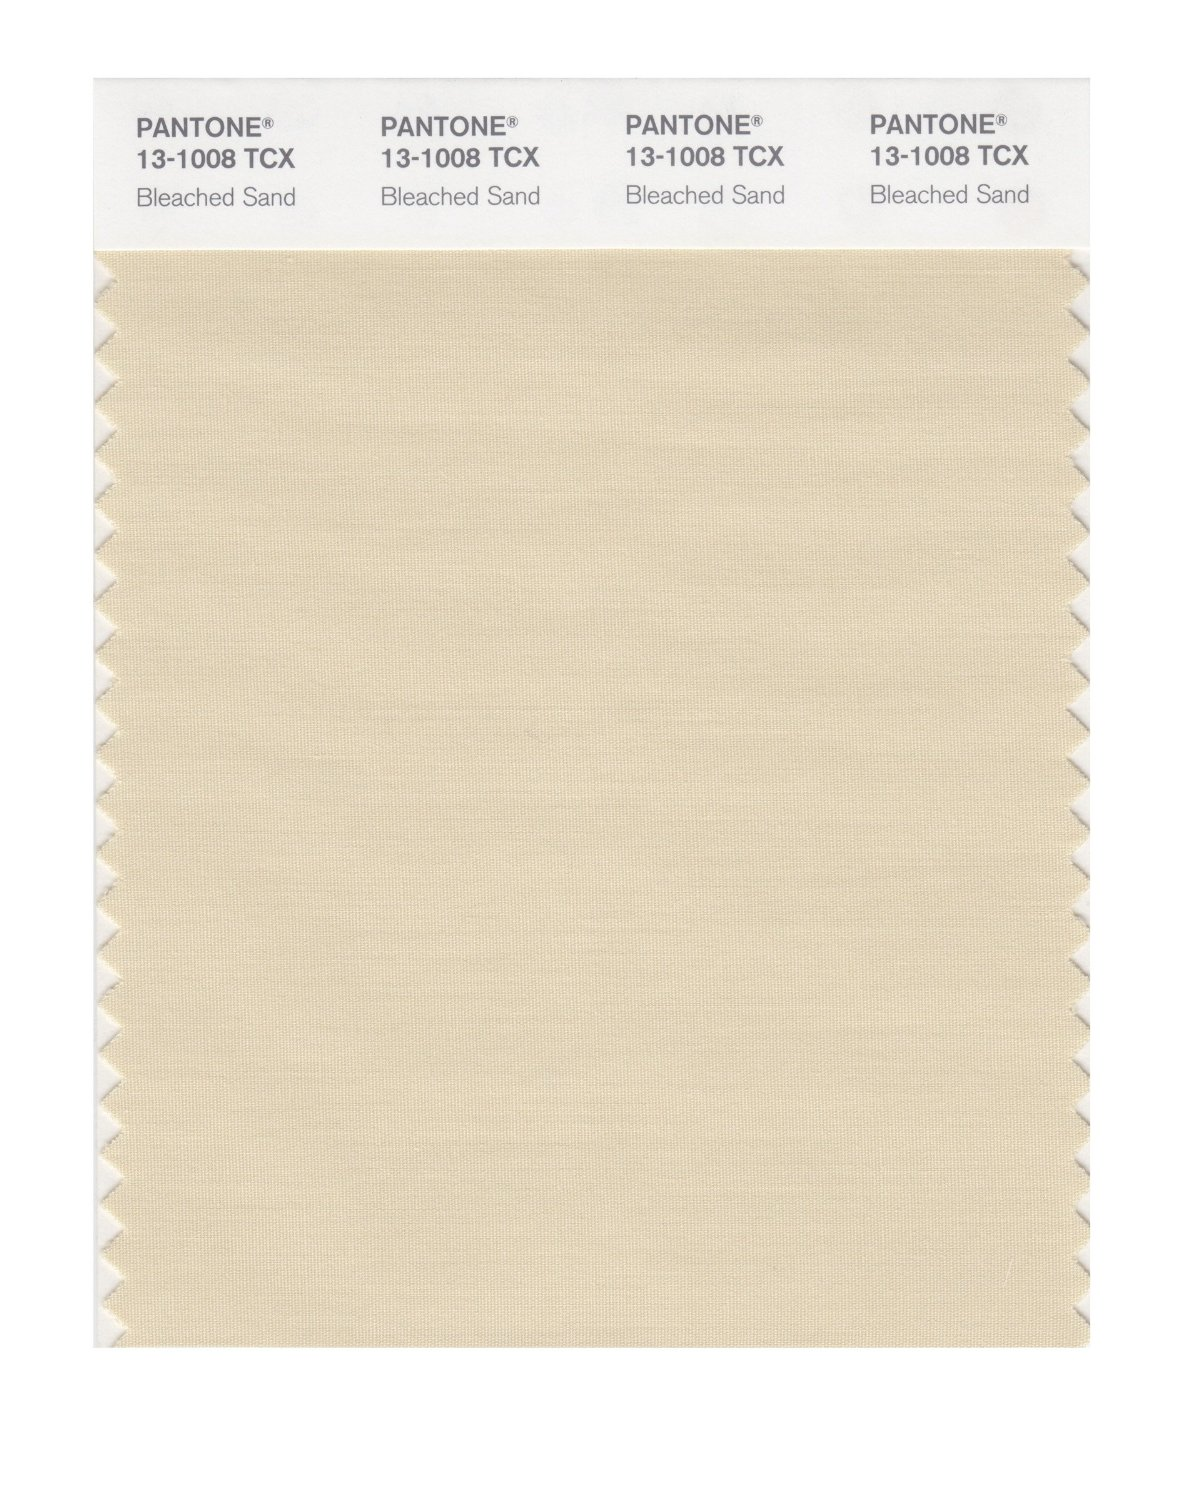 Pantone Smart Swatch 13-1008 Bleached Sand